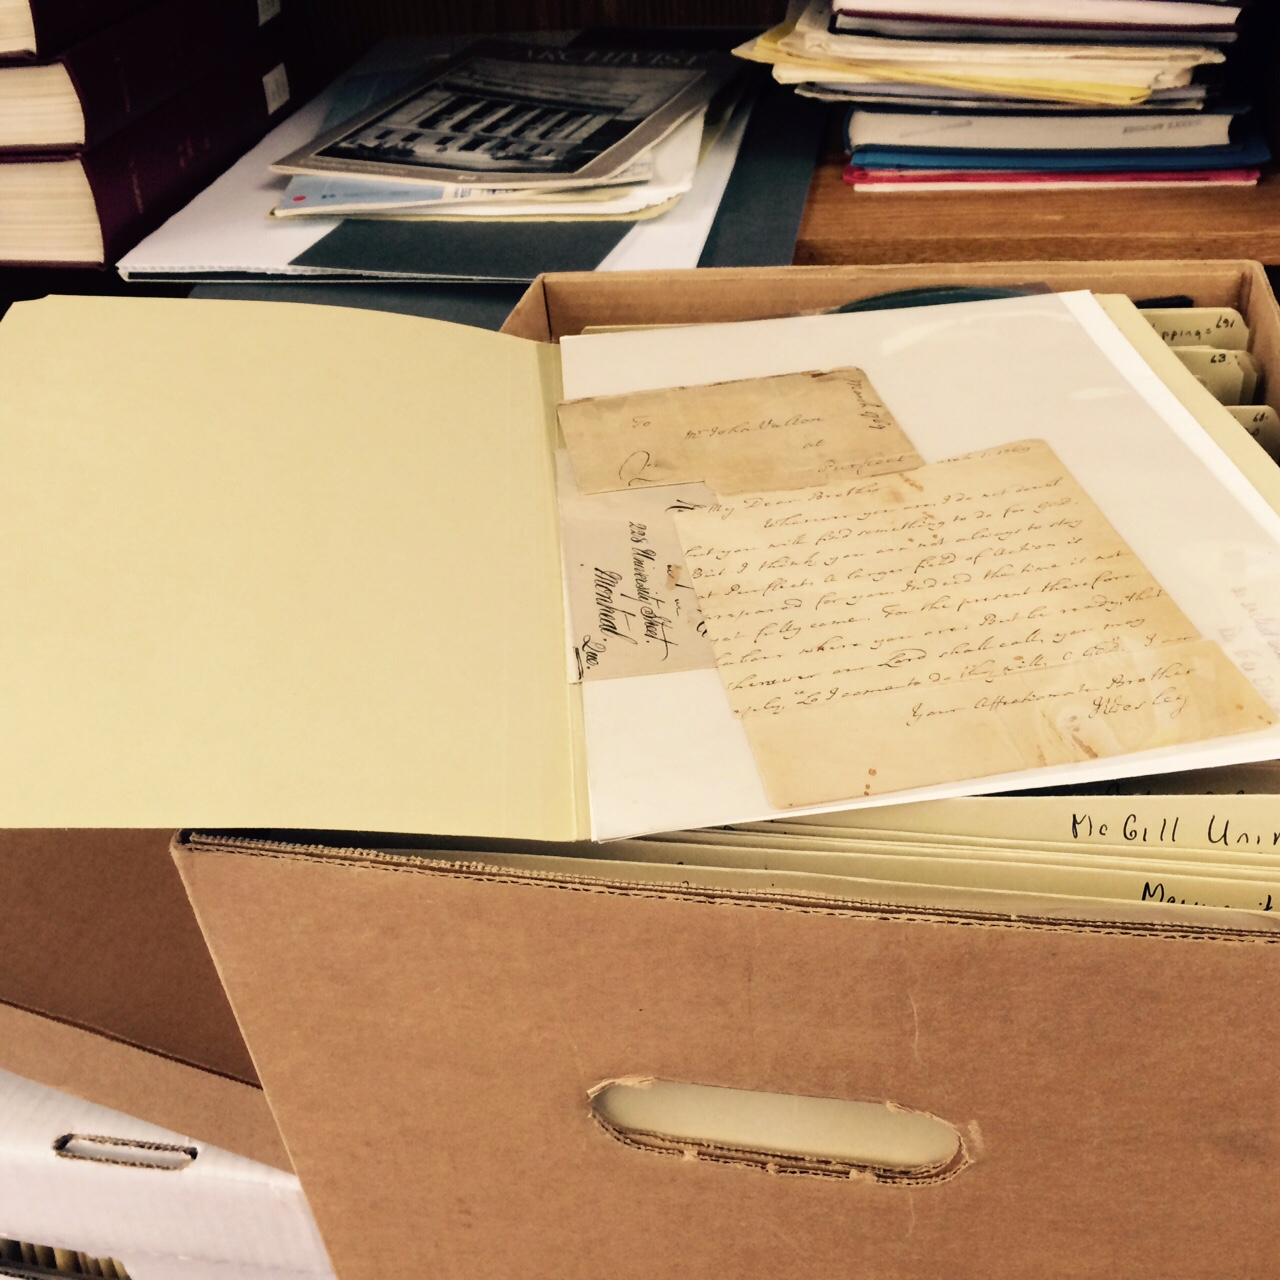 [photo of archival documents]